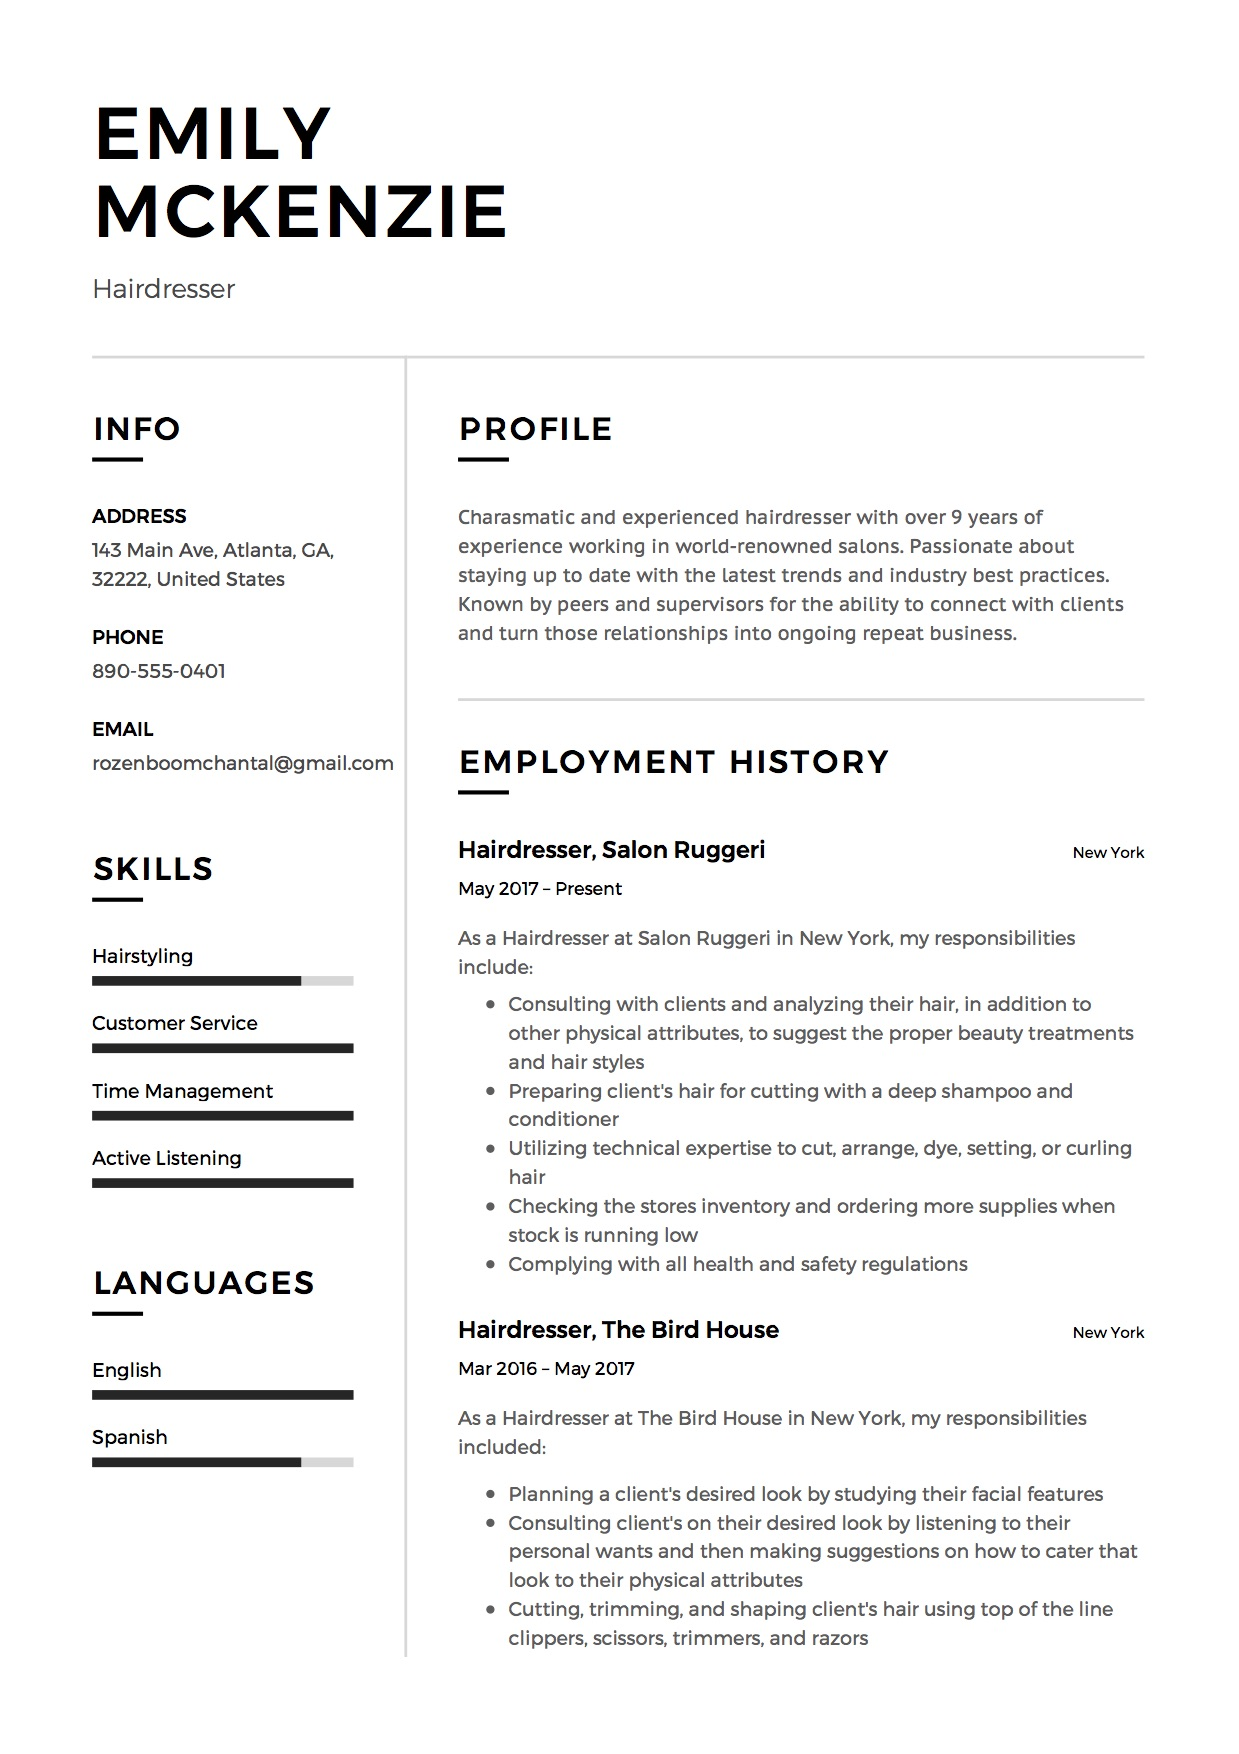 A resume that stands out